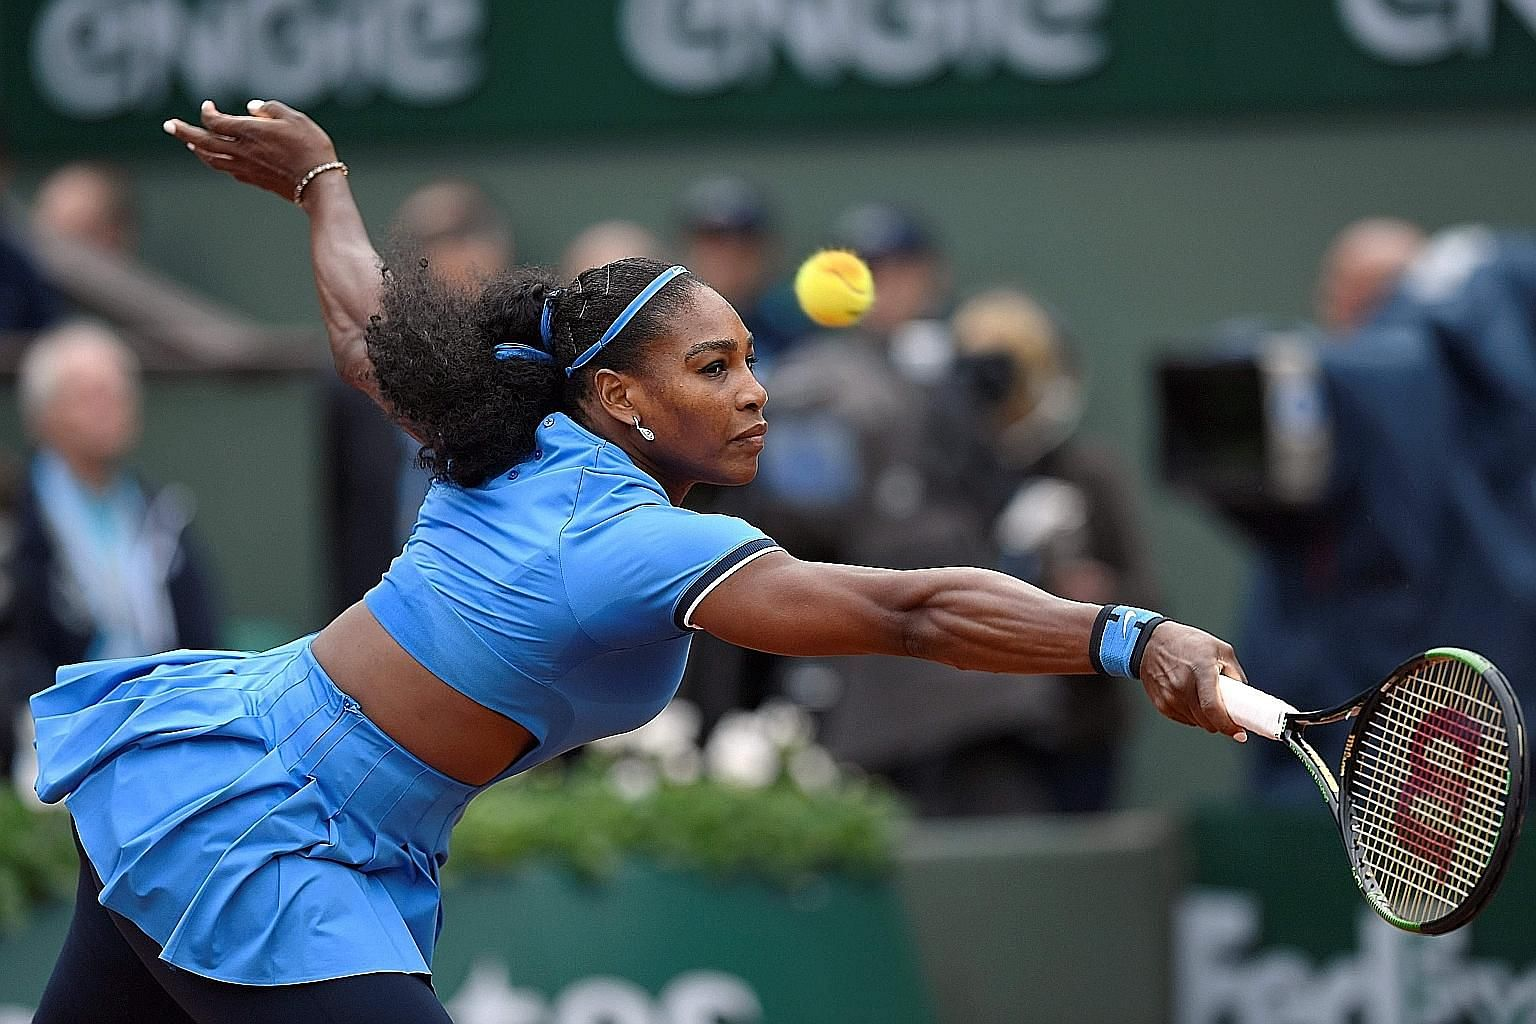 Despite losing two Grand Slam finals this year - including last Saturday's French Open final to Garbine Muguruza - Serena Williams (above) has had a dominant run in the past 12 months, which pushed her earnings past Maria Sharapova to US$28.9 million